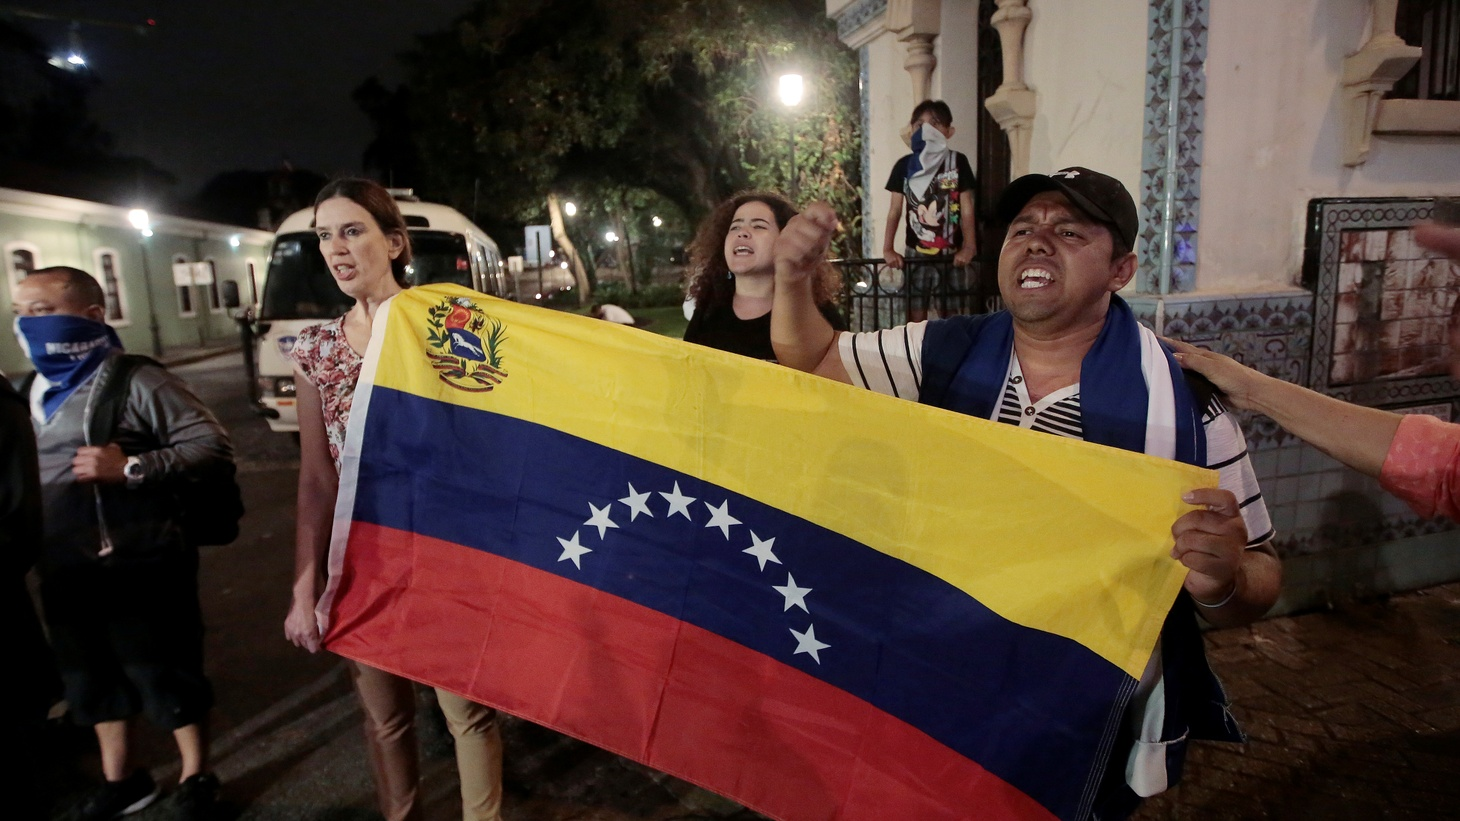 Venezuelans protest in front of the Ministry of Foreign Affairs where there was a meeting of the International Contact Group (IGC) to discuss their support for a political solution to Venezuela's political crisis, in San Jose, Costa Rica May 6, 2019.